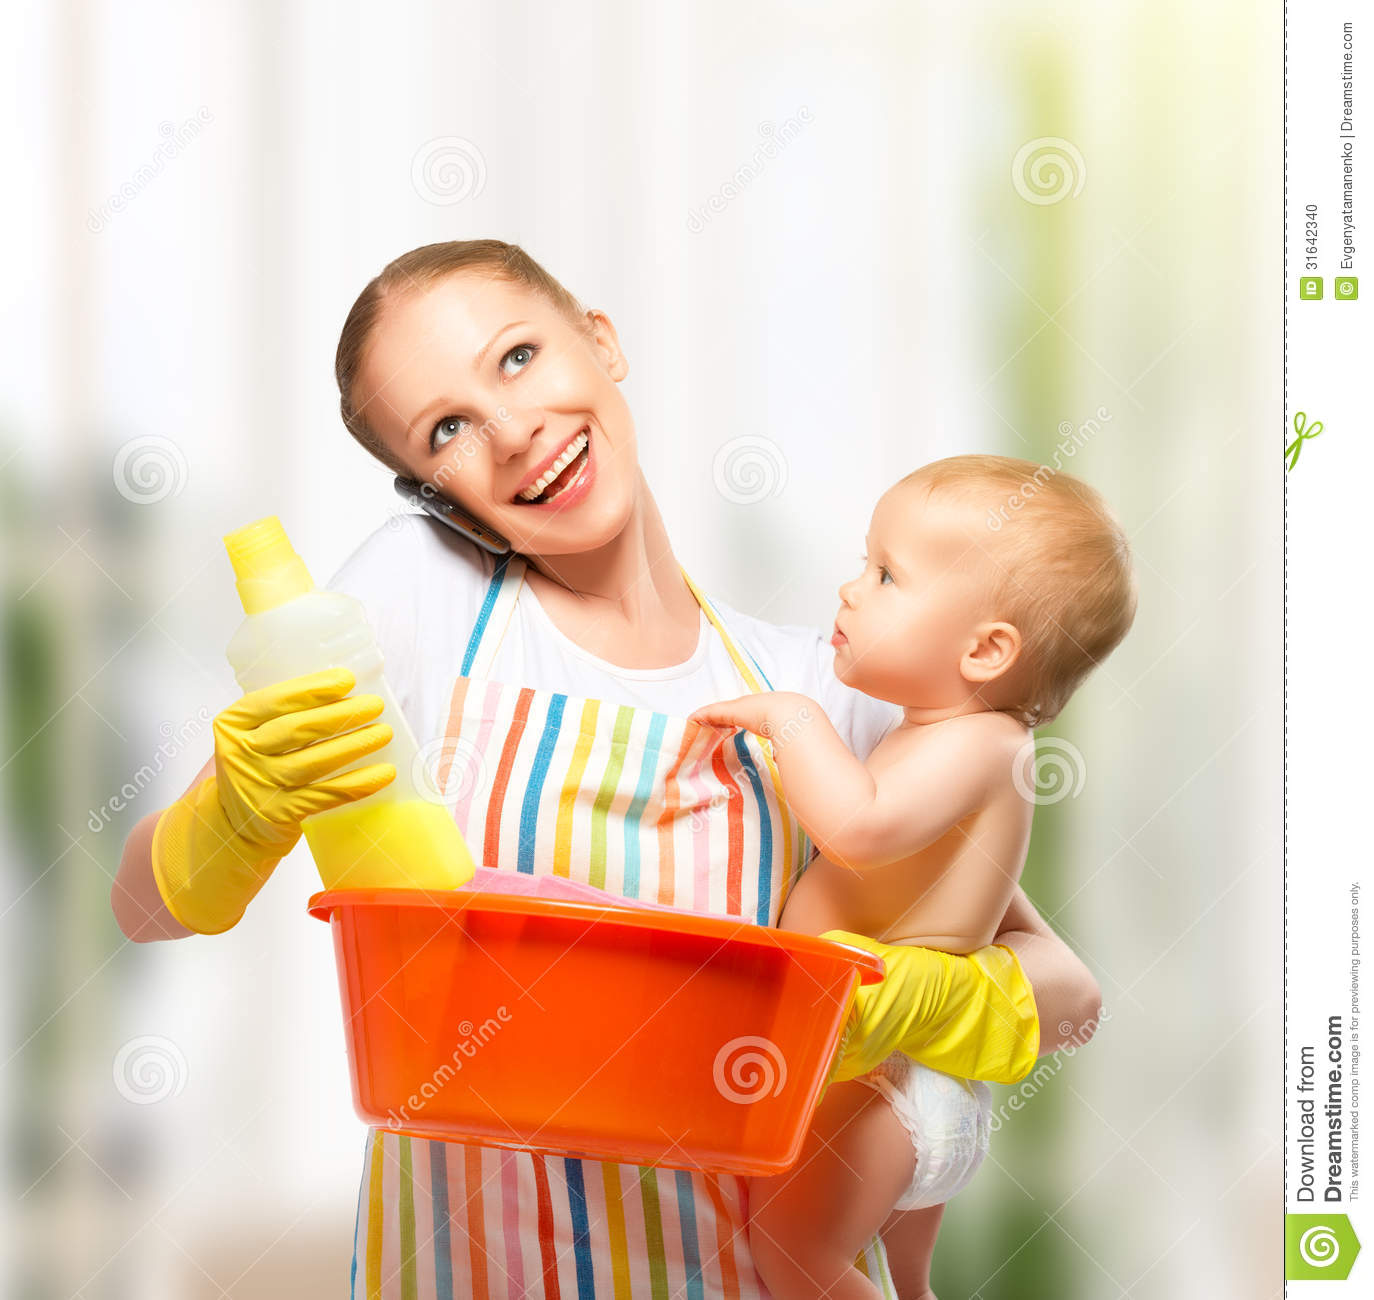 young happy mother is a housewife with a baby does